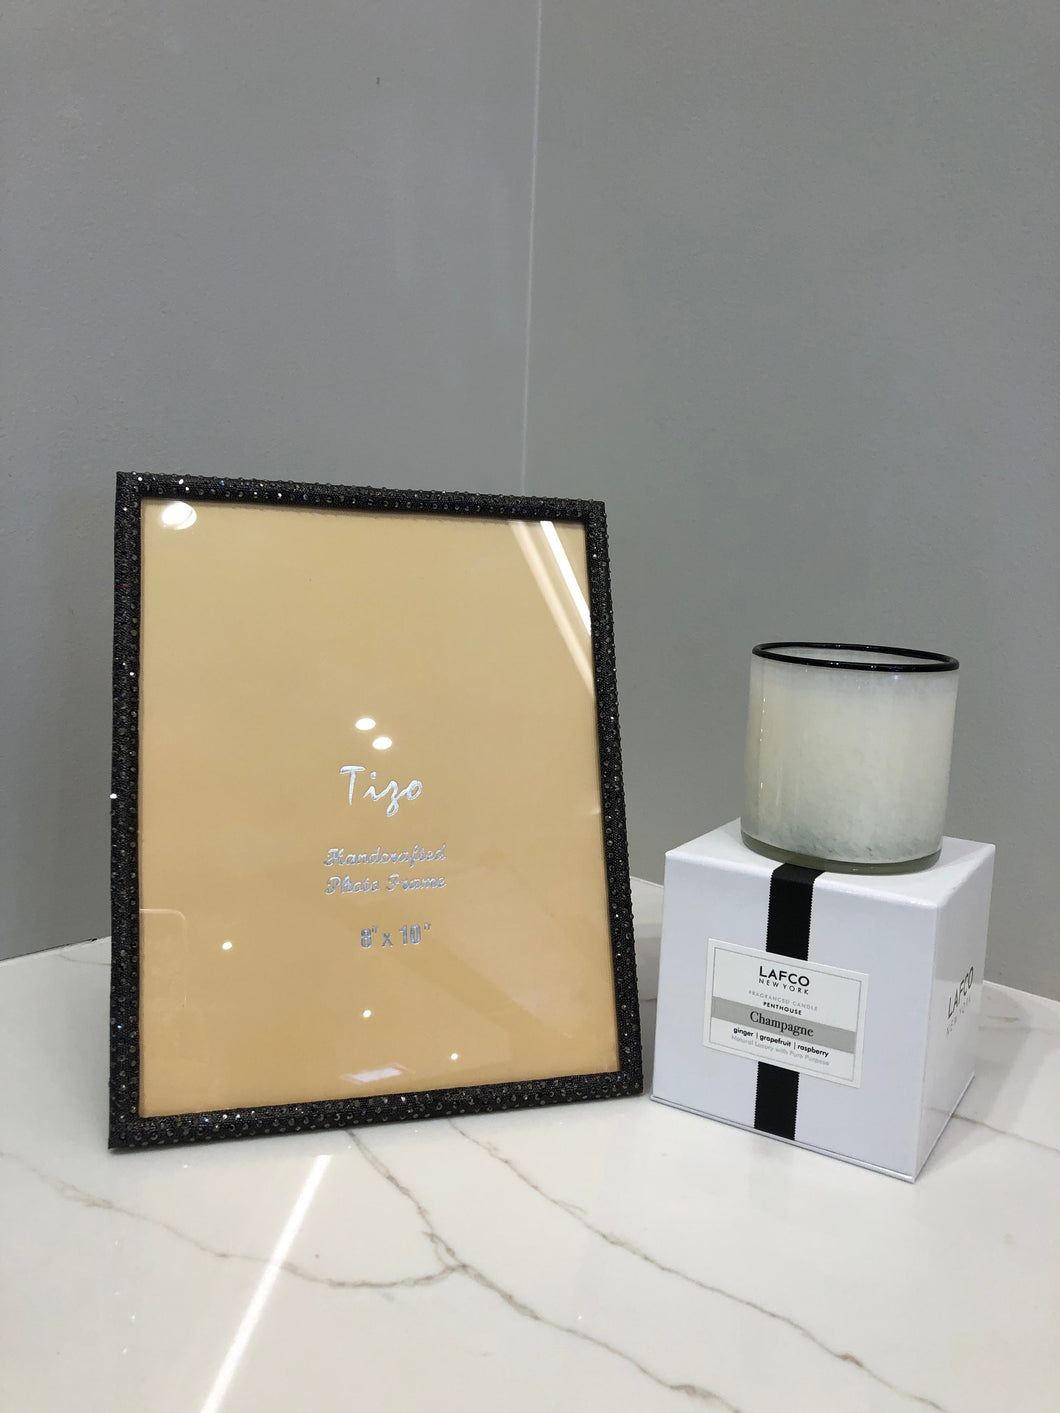 8 x 10 Tizo Picture Frame & Champagne Candle